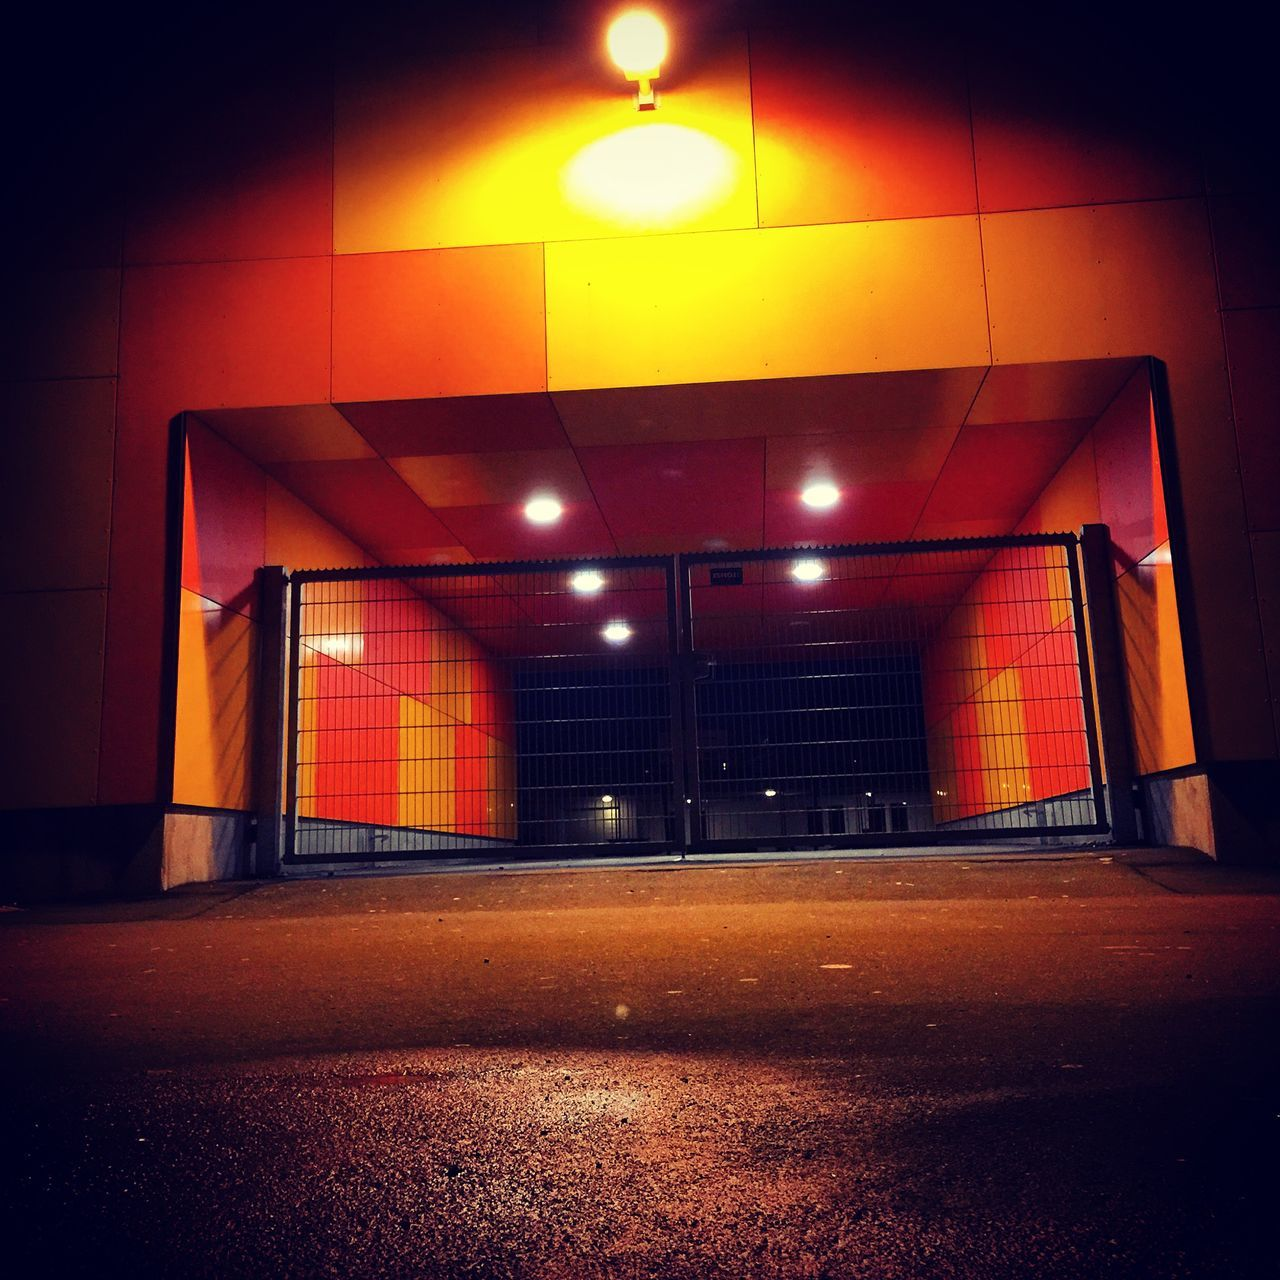 illuminated, architecture, built structure, empty, night, no people, the way forward, indoors, building exterior